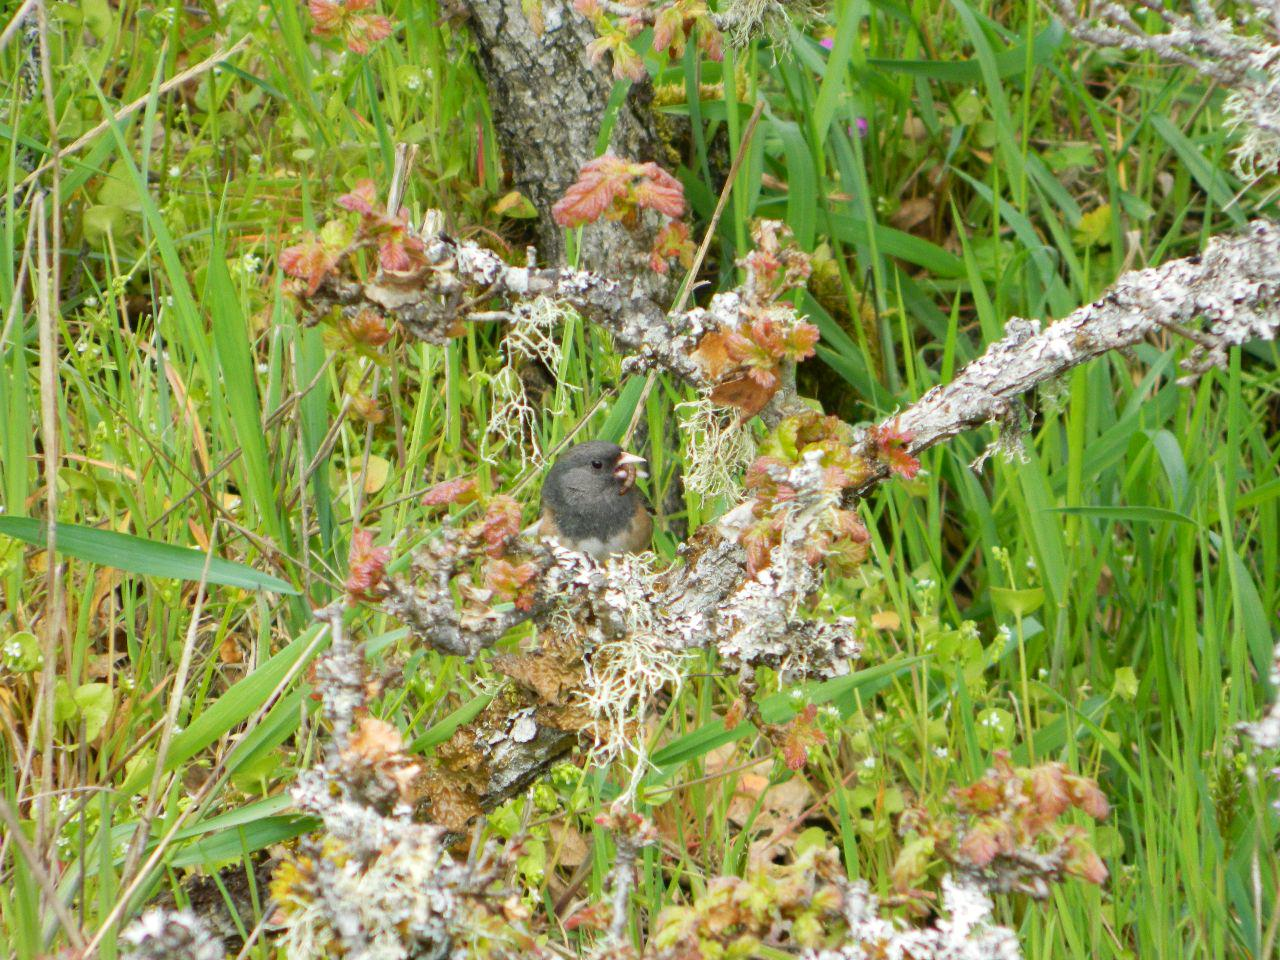 a grub to be delivered to baby junco